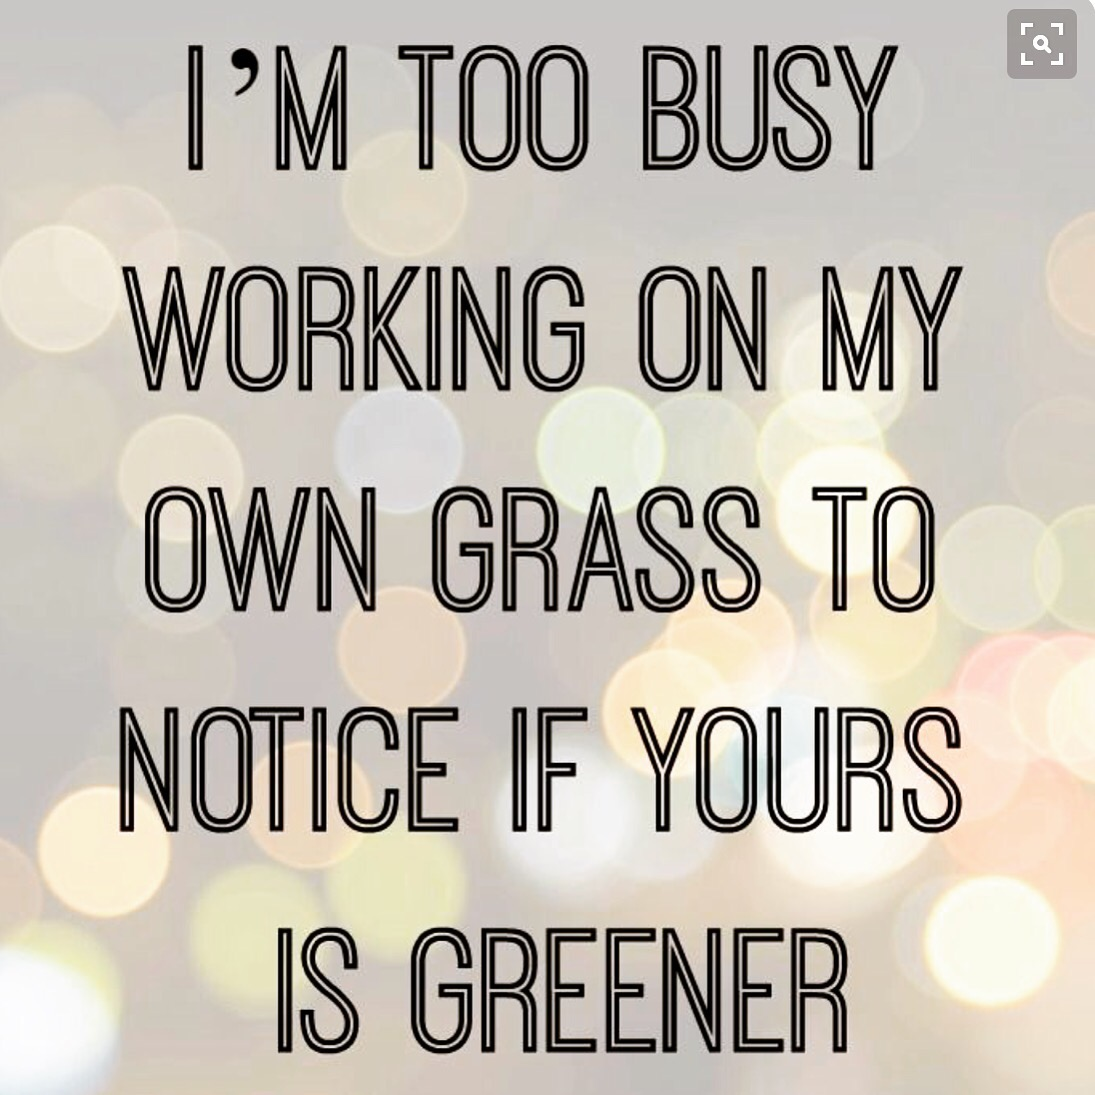 Quotes About People Who Notice: I'm Too Busy Working On My Own Grass To Notice If Yours Is